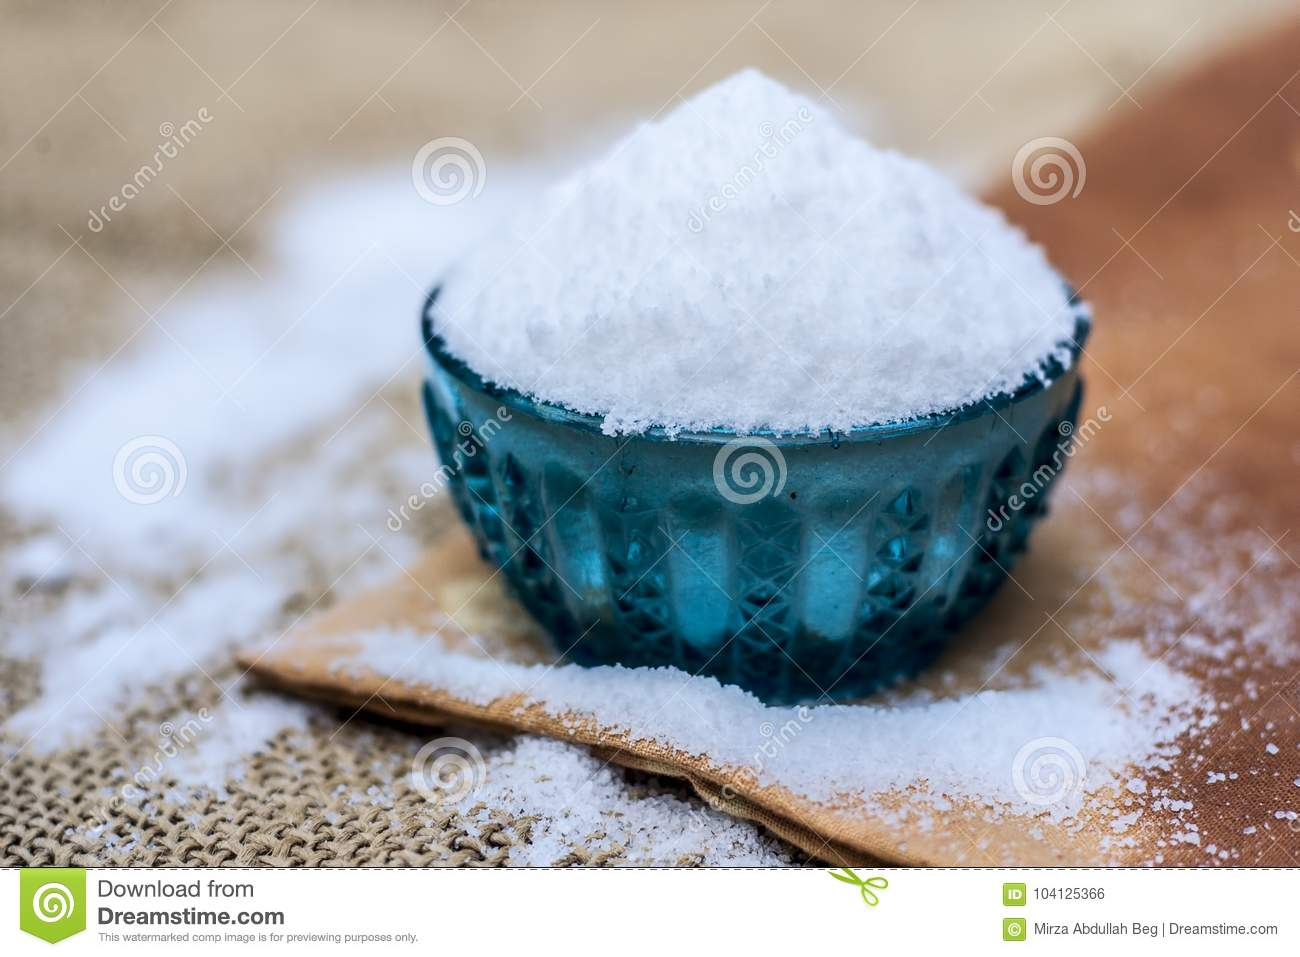 Table Salt Also Known As Sodium Chloride Stock Photo